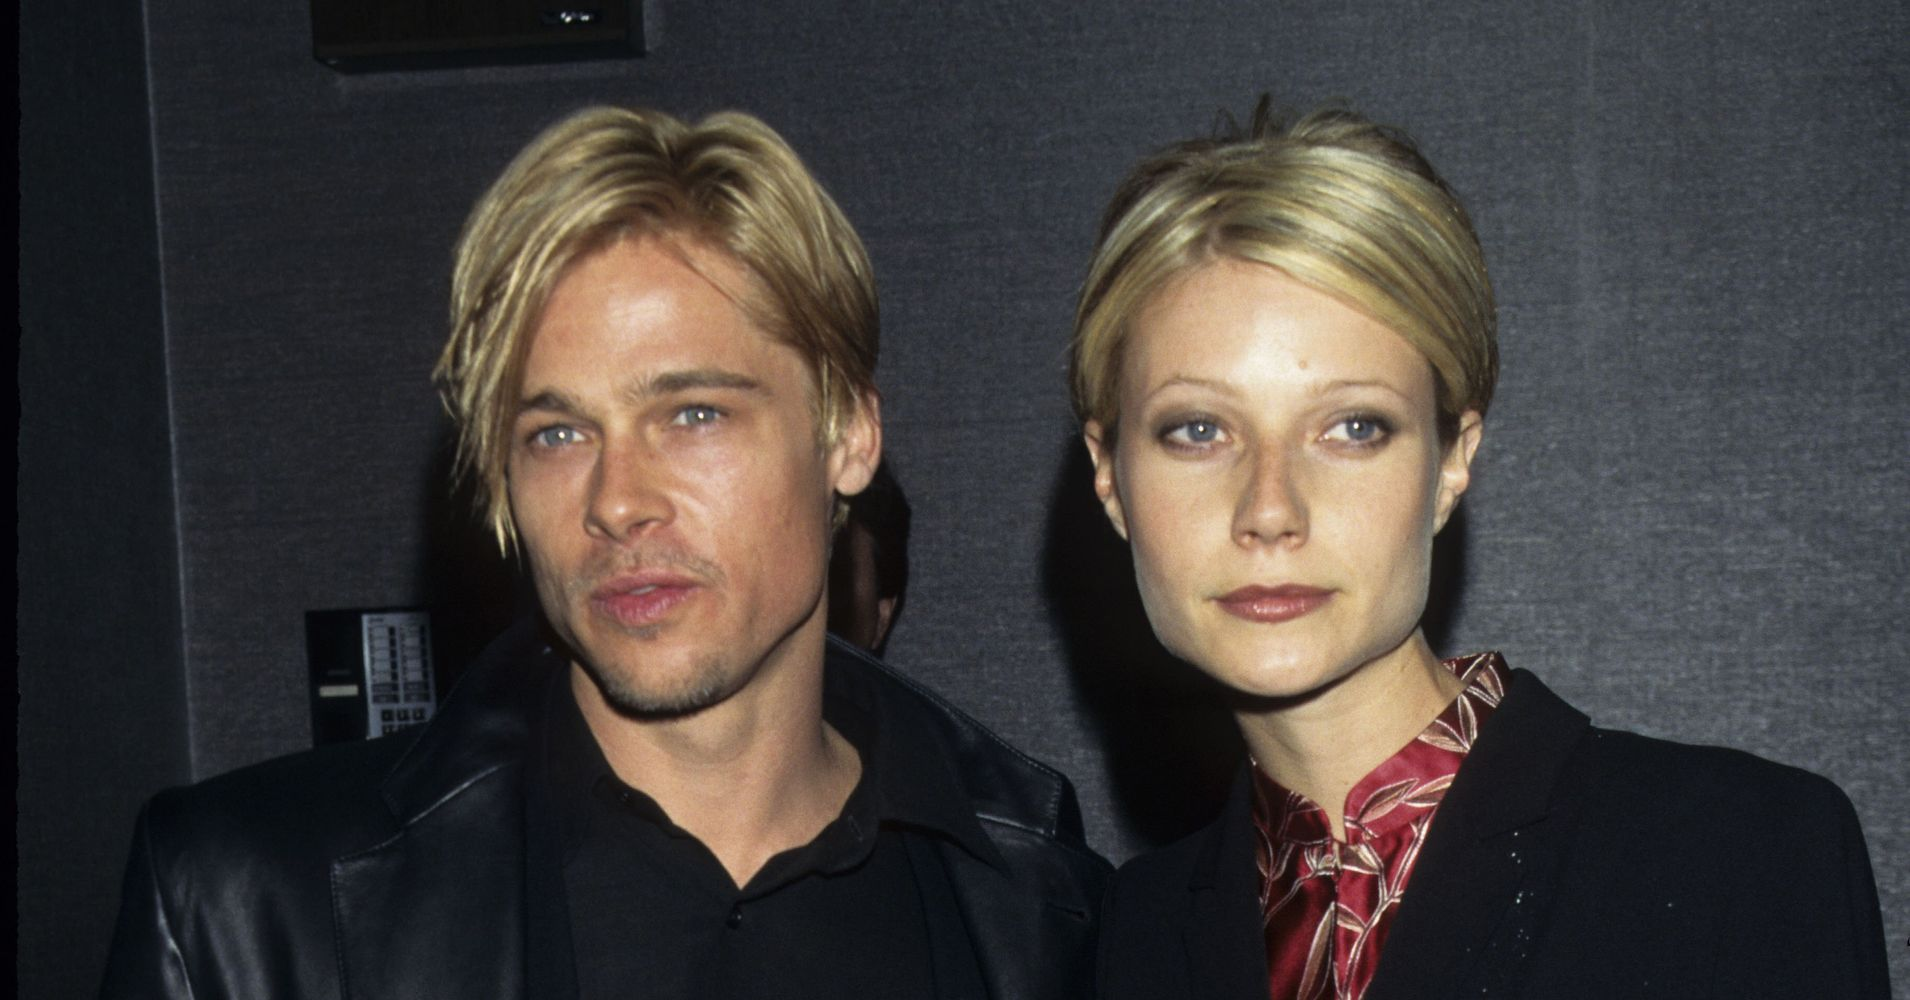 dda524ce59 14 Celebrity Couples Who Mastered The Art Of Coordinated Looks ...